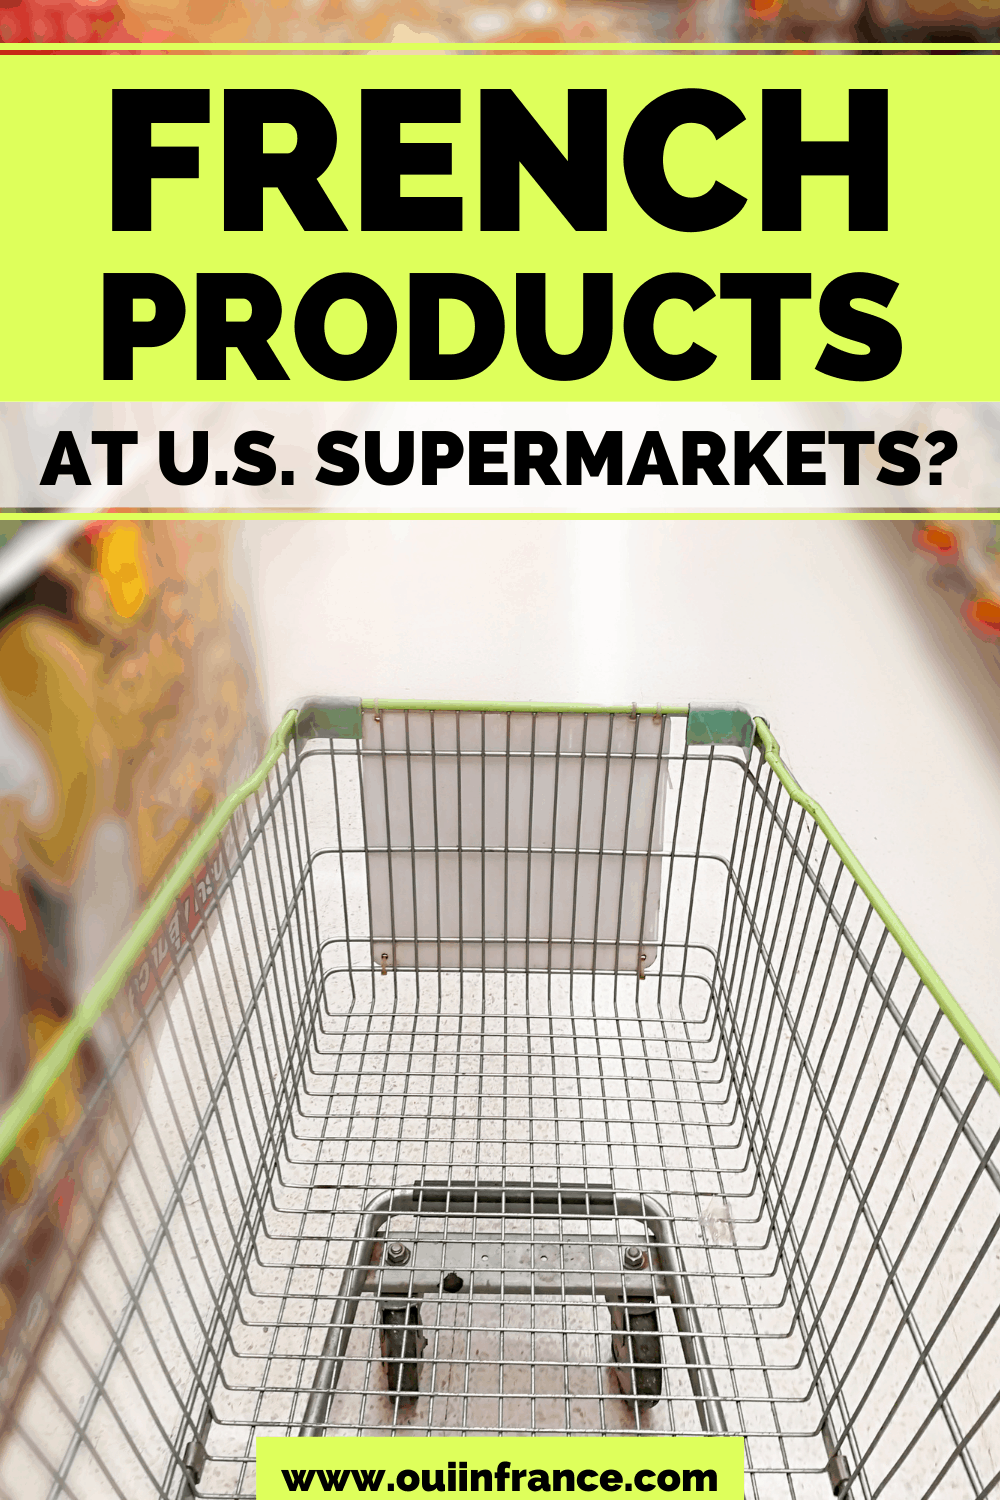 What French products can you find at GROCERY STORES in the USA